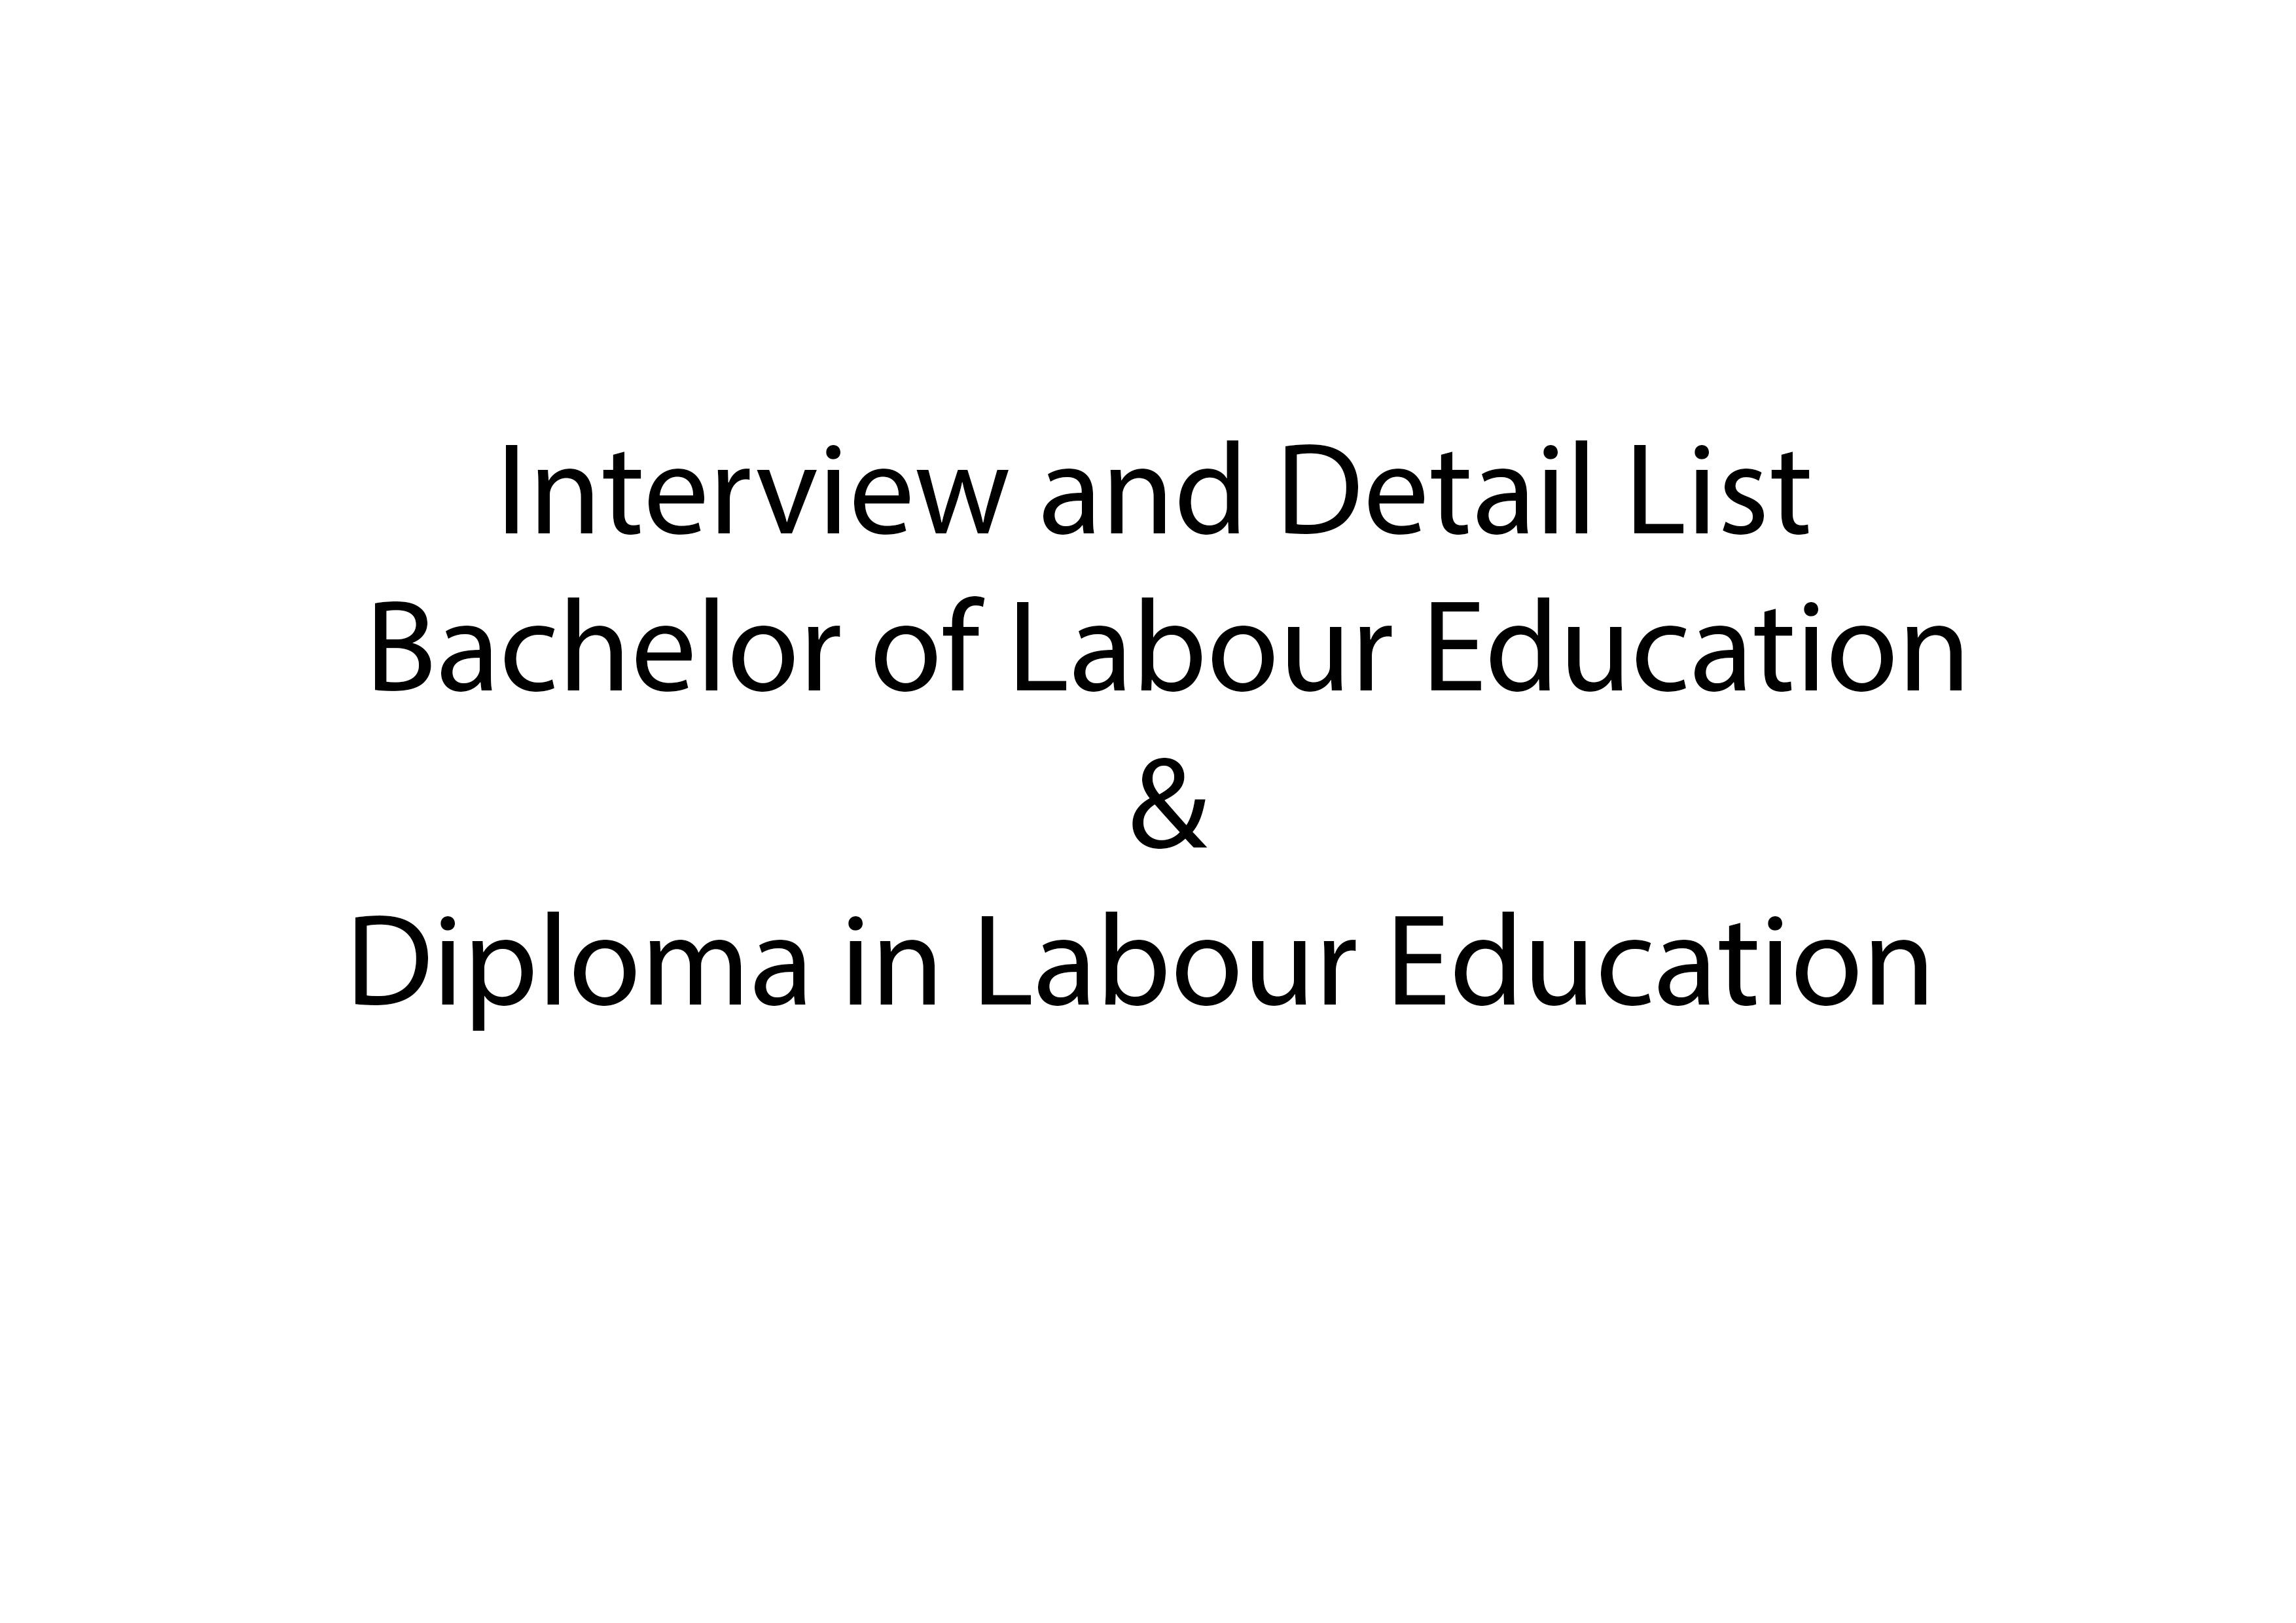 Interview and Detail List  Bachelor of Labour Education & Diploma in Labour Education